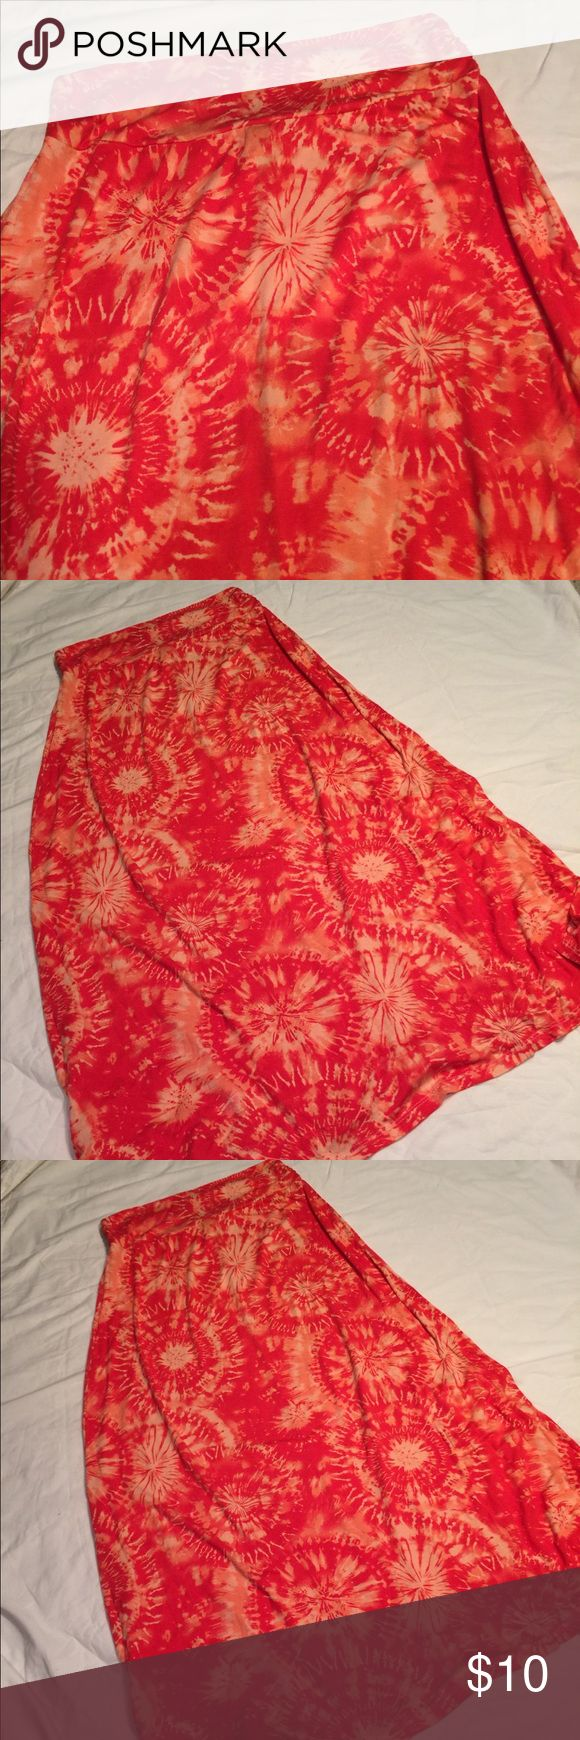 L.A. Apparel Boho,Hippie,Tie Dye Maxi Skirt-Sz- L L.A. Apparel Boho, hippie, casual. Tie Dye Maxi Skirt.  Size - Large  Soft cotton with some lycra for stretch. Machine wash, tumble dry low.  Size - Large * Wide Elastic Waist Band, * Gathered on each side. * Slimming Waistline  * Very Soft T-Shirt Type Fabric  * Color's- Orange & Cream  * Cotton Blend  * Full Length  IN EXCELLENT LIKE NEW CONDITION! COMES FROM SMOKE AND PET FREE ENVIRONMENT! 👓 BE SURE TO CHECK OUT MY OTHER LISTINGS 👓 L.A…